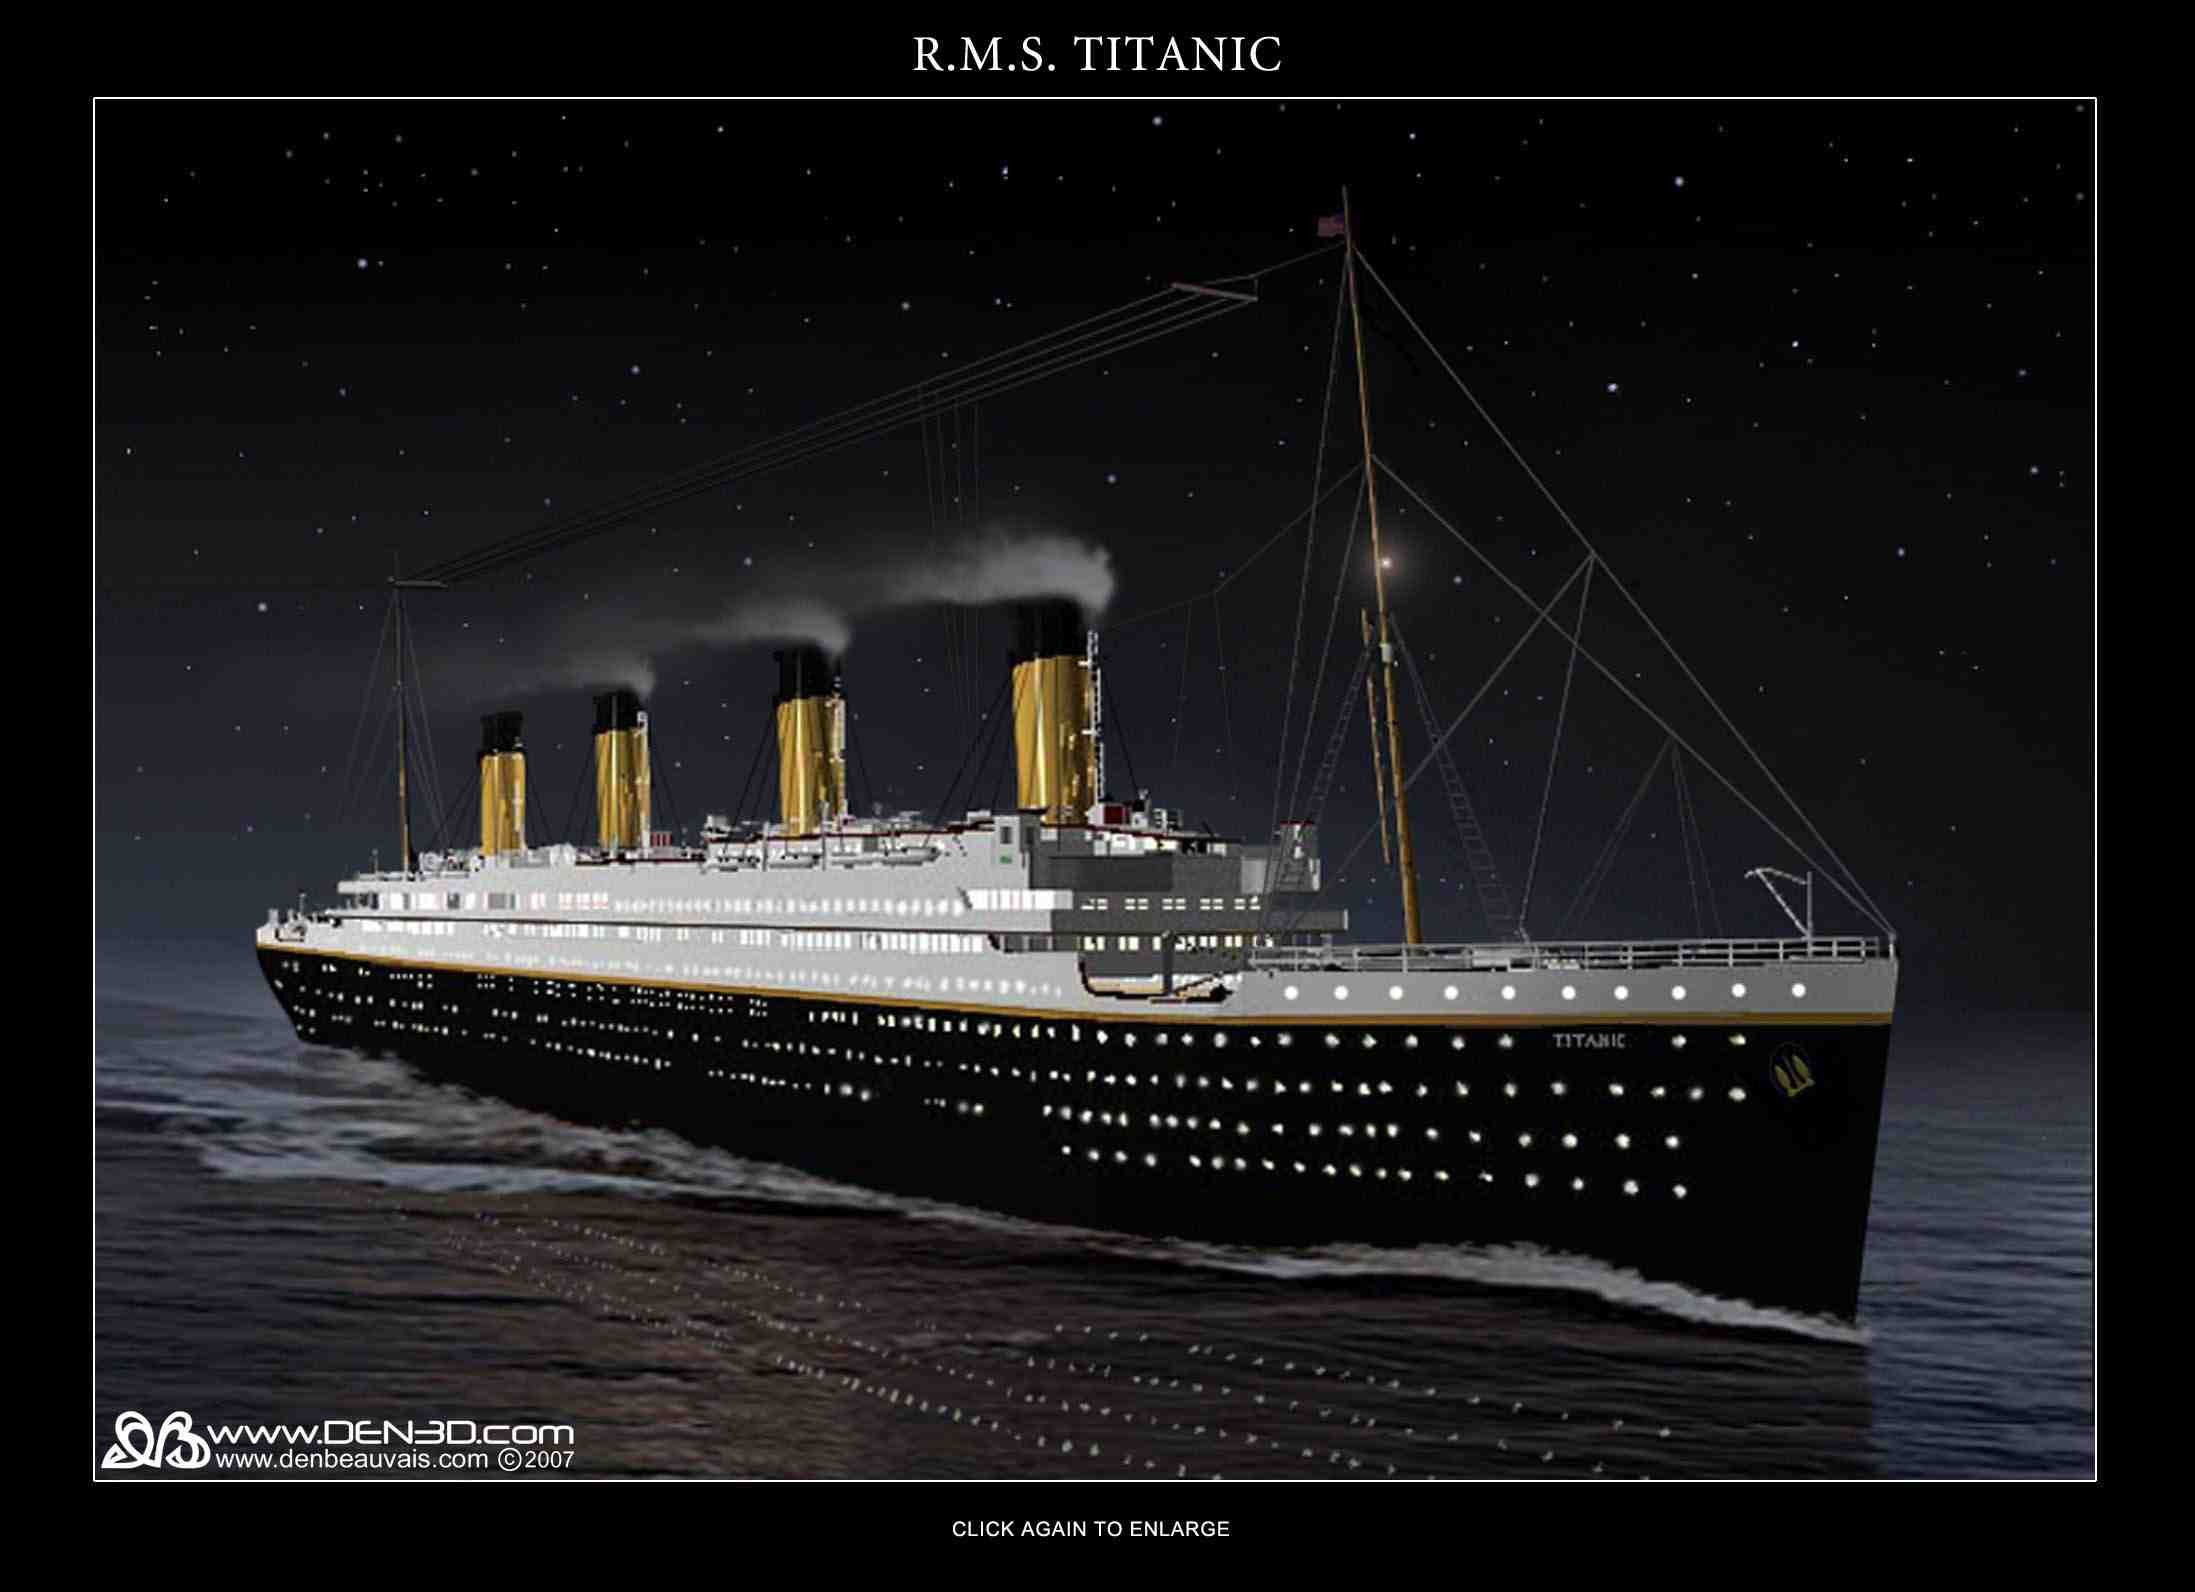 2195x1592 RMS Titanic Wallpapers - Wallpaper Cave